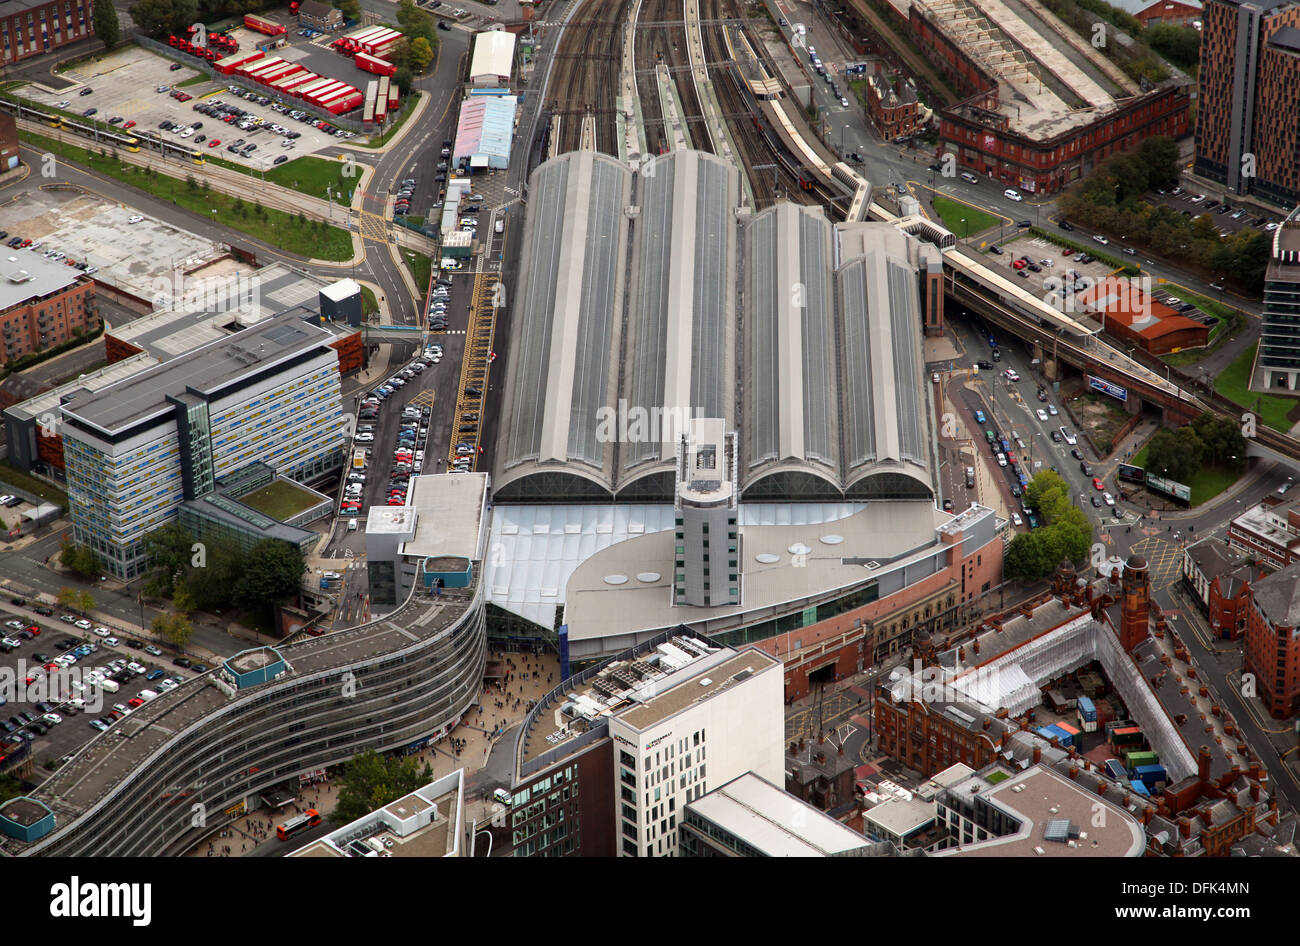 aerial view of Manchester Piccadilly railway station, Manchester - Stock Image